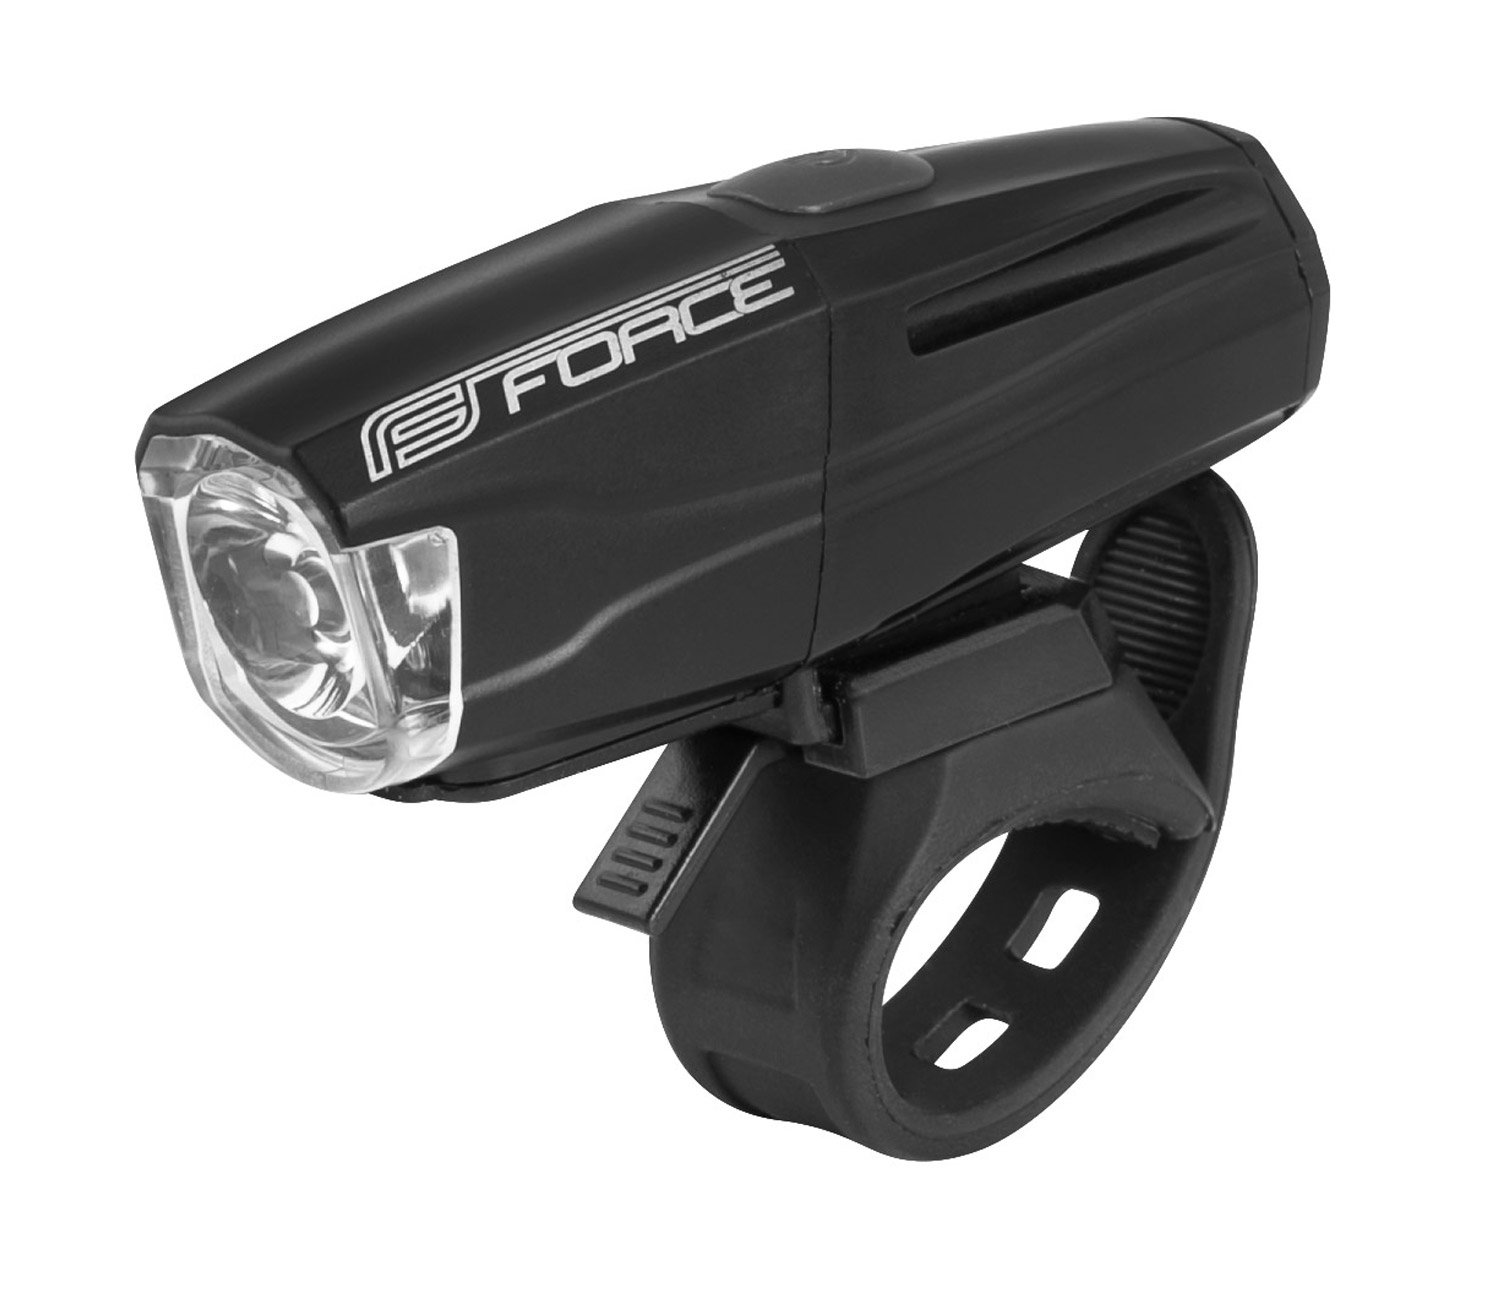 Force Shark 500 Lumen lygte med USB opladning